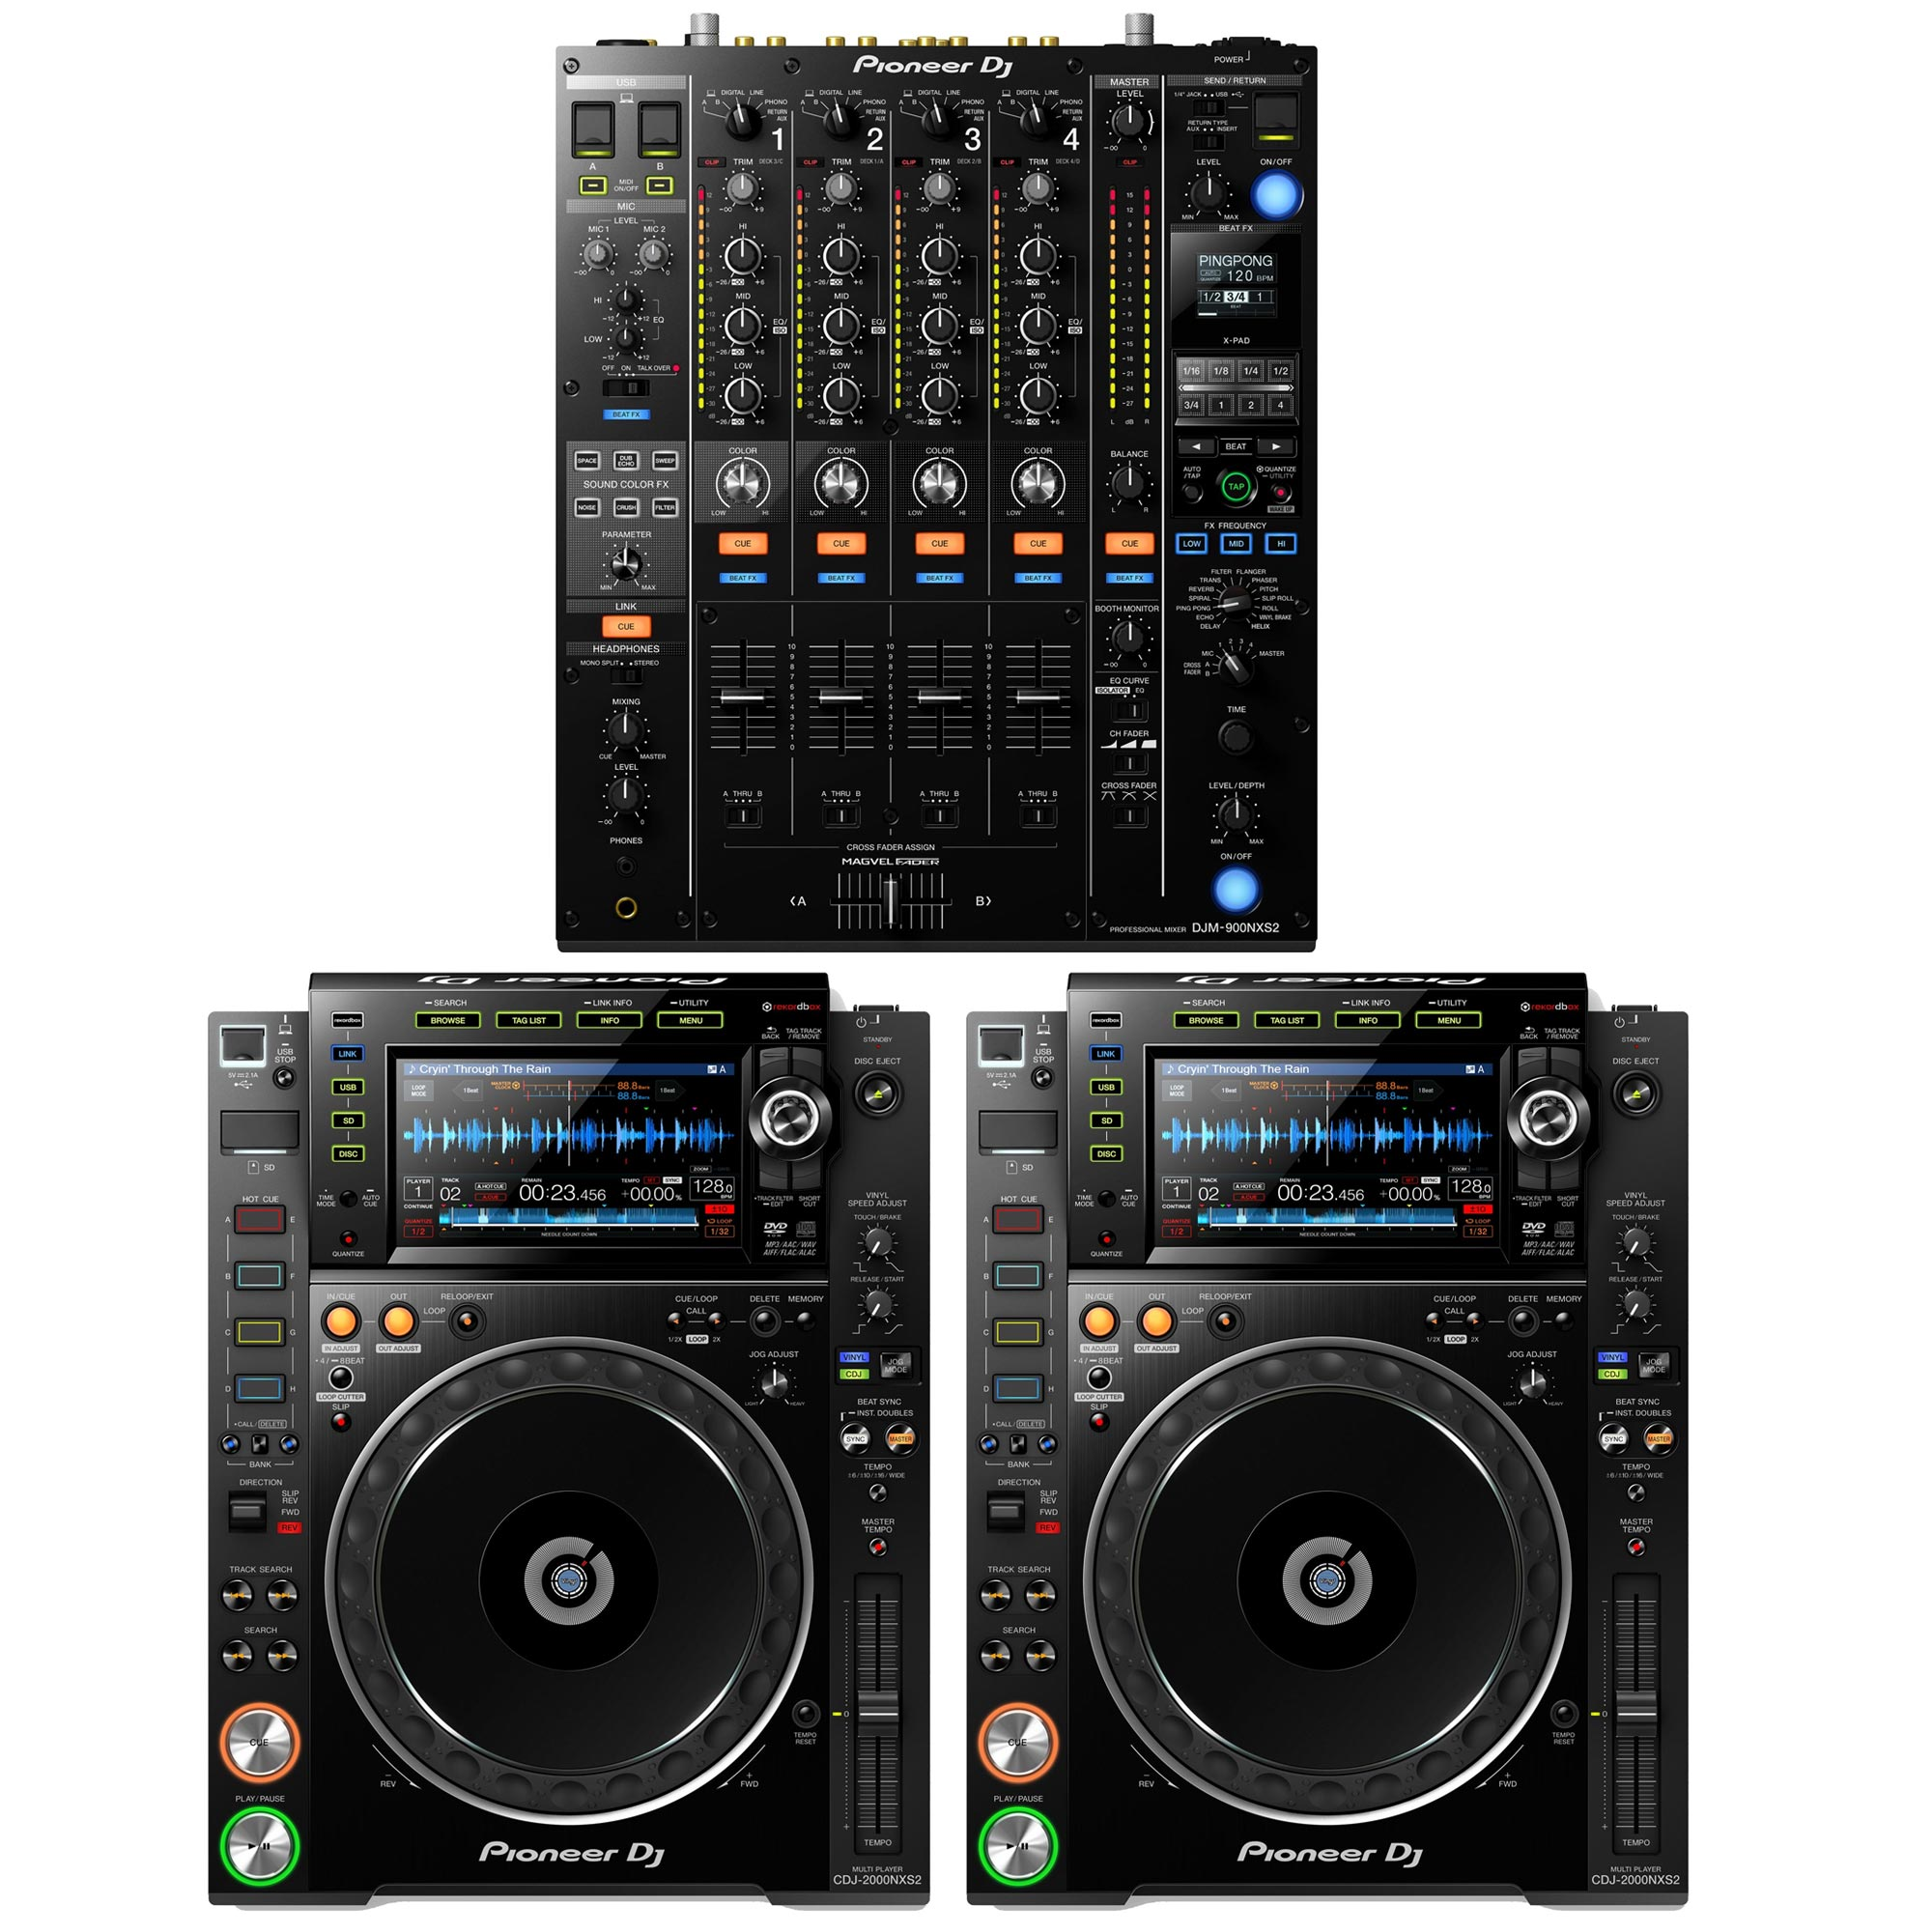 pioneer dj djm 900nxs2 2 cdj 2000nxs2 complete system agiprodj. Black Bedroom Furniture Sets. Home Design Ideas